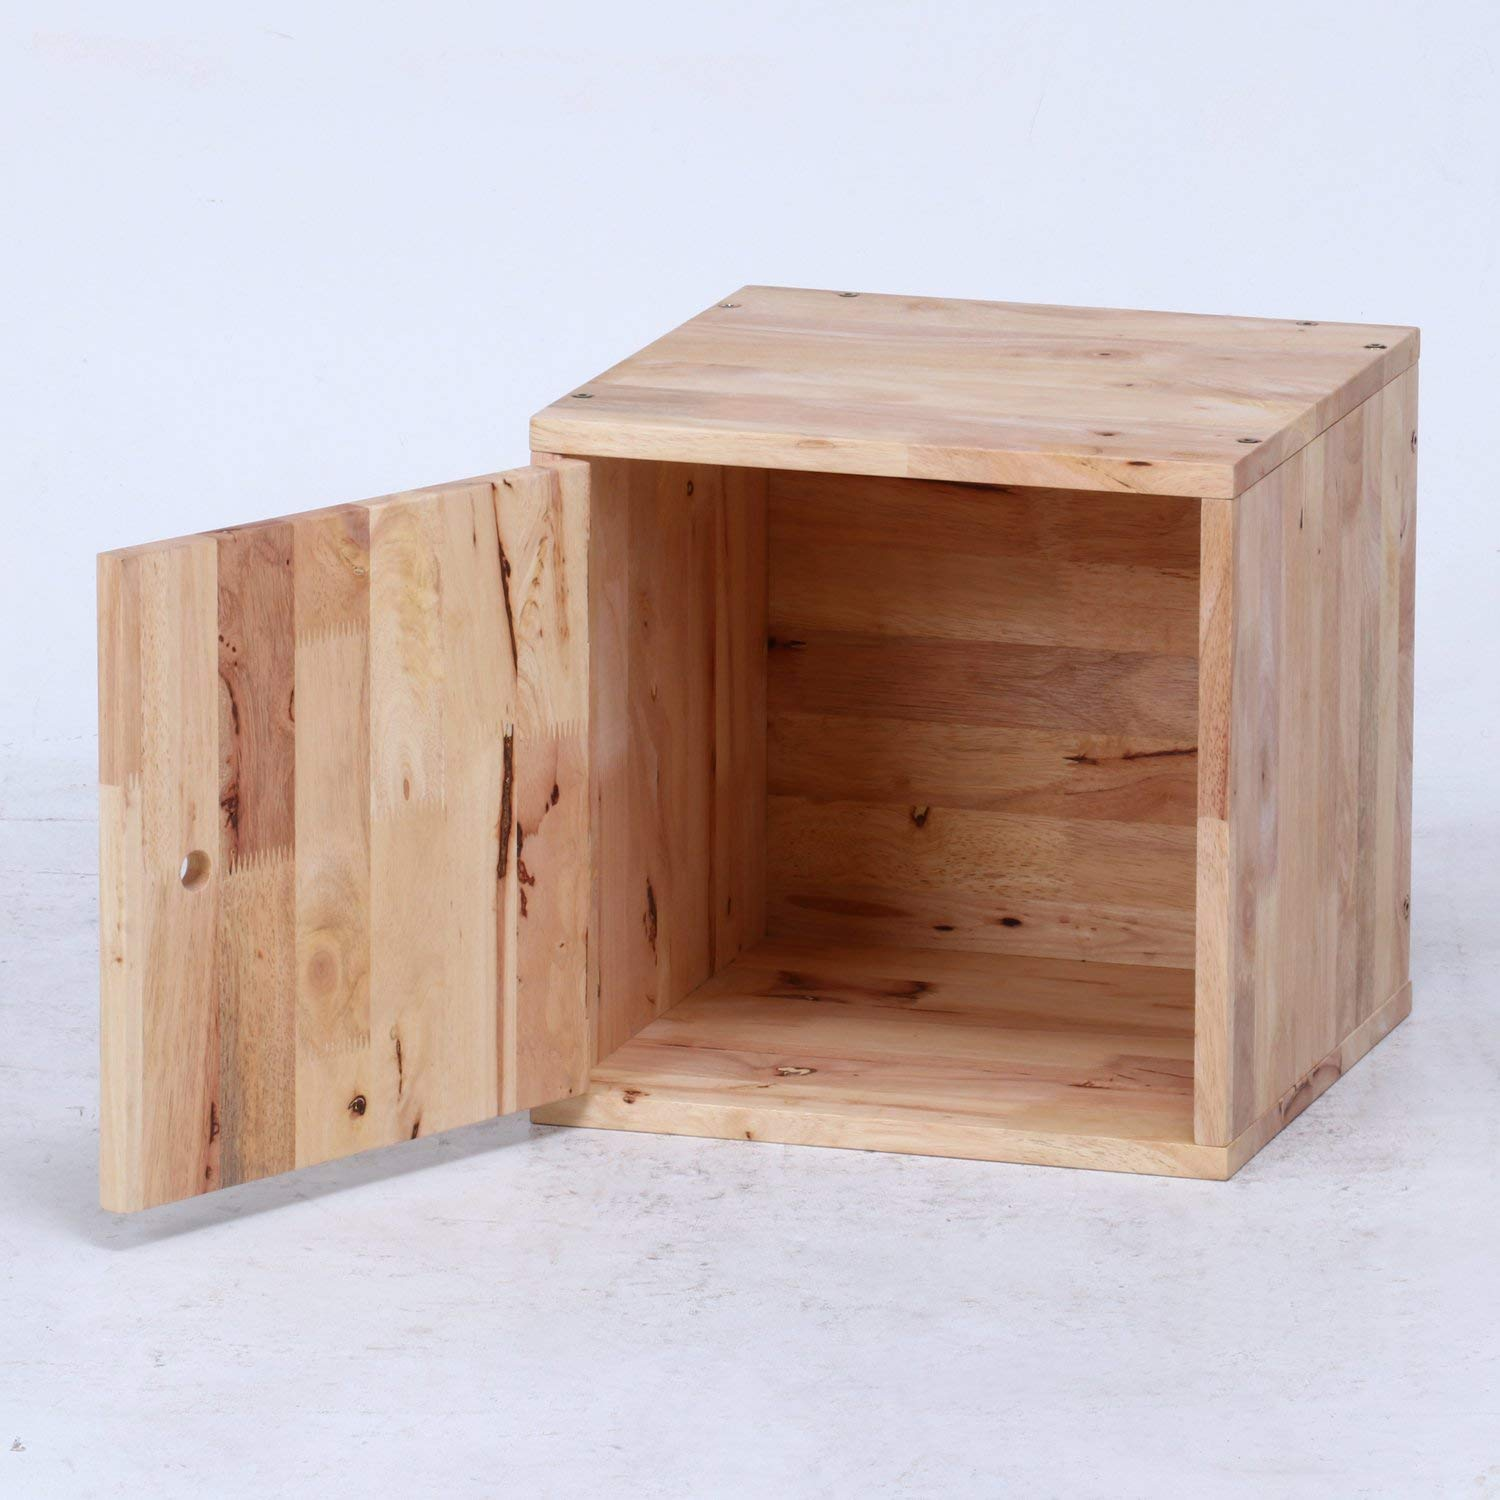 Wooden box (2 Sets)